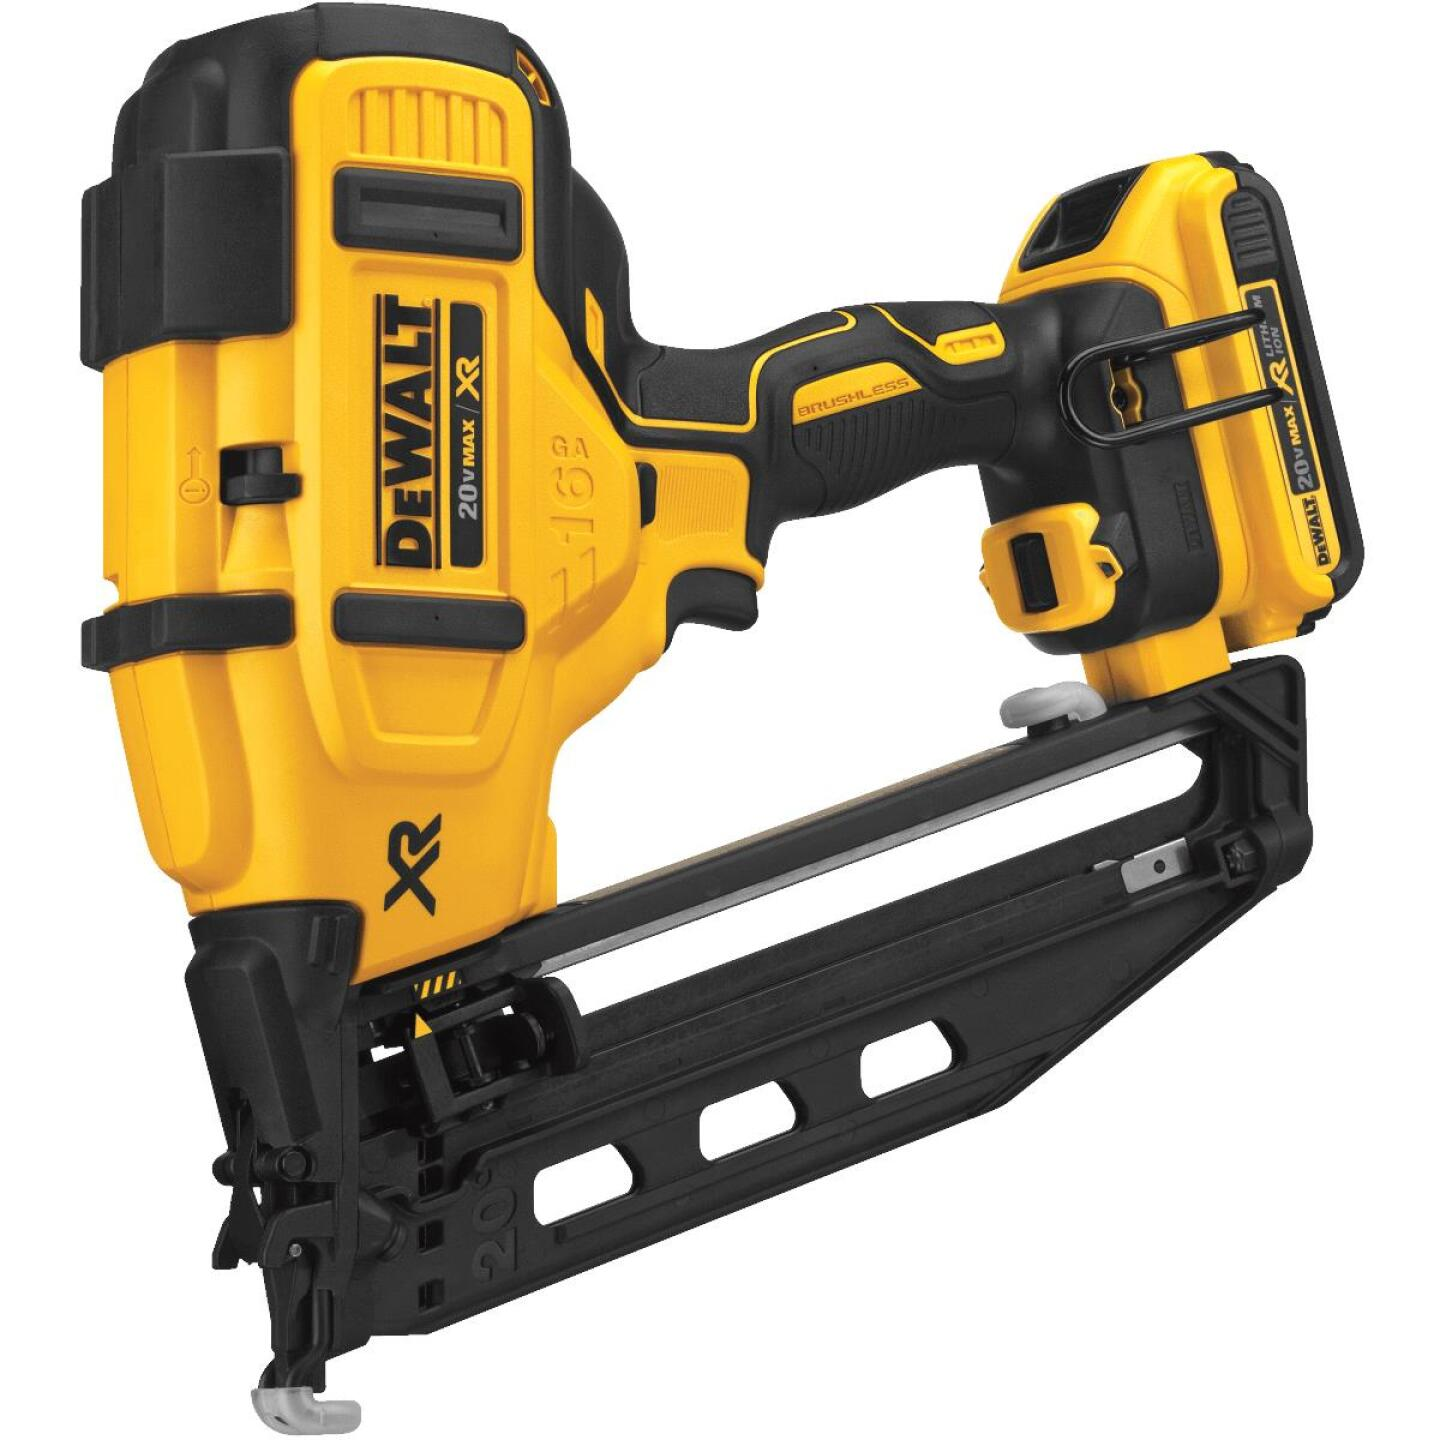 DeWalt 20 Volt MAX XR Lithium-Ion 16-Gauge 2-1/2 In. Angled Cordless Finish Nailer Kit Image 3